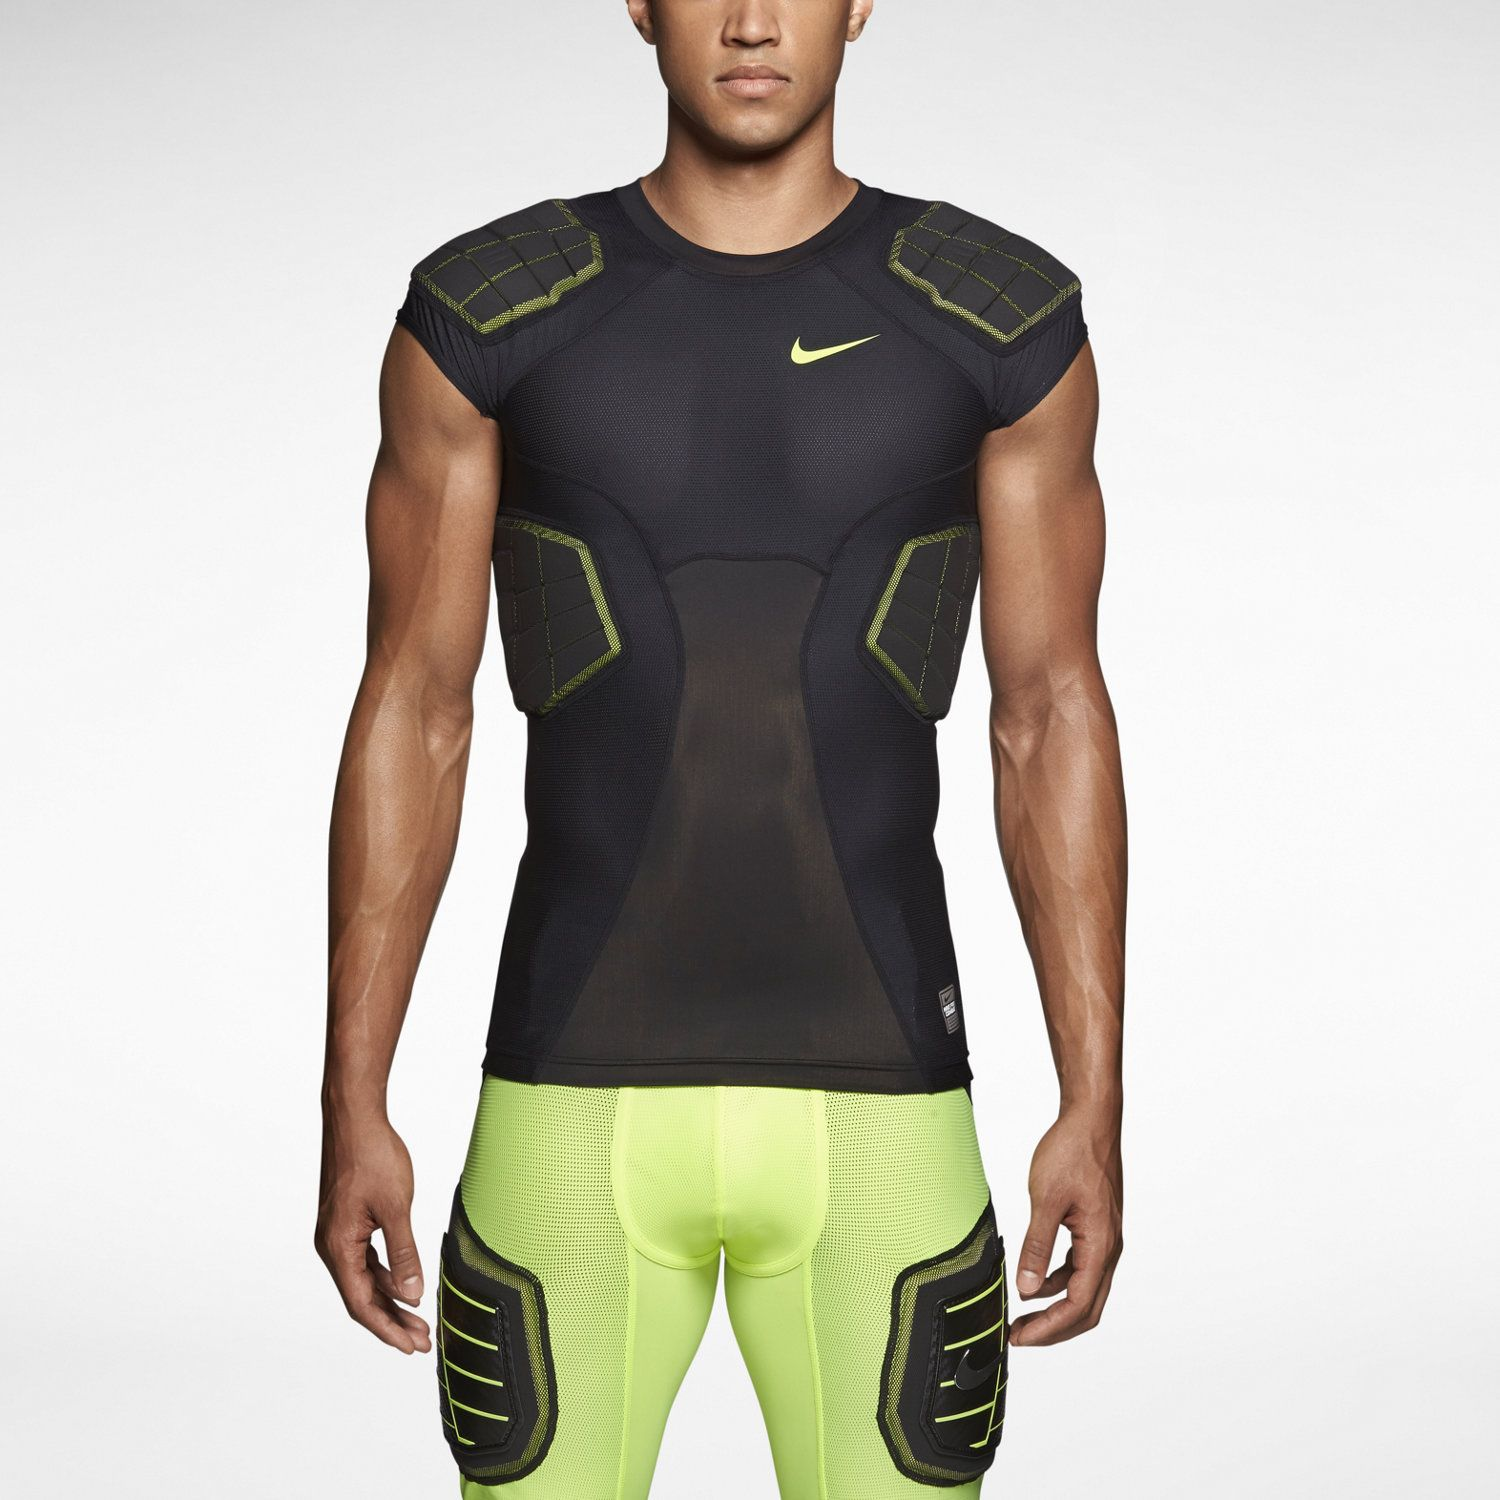 Image result for compression tights football shirts